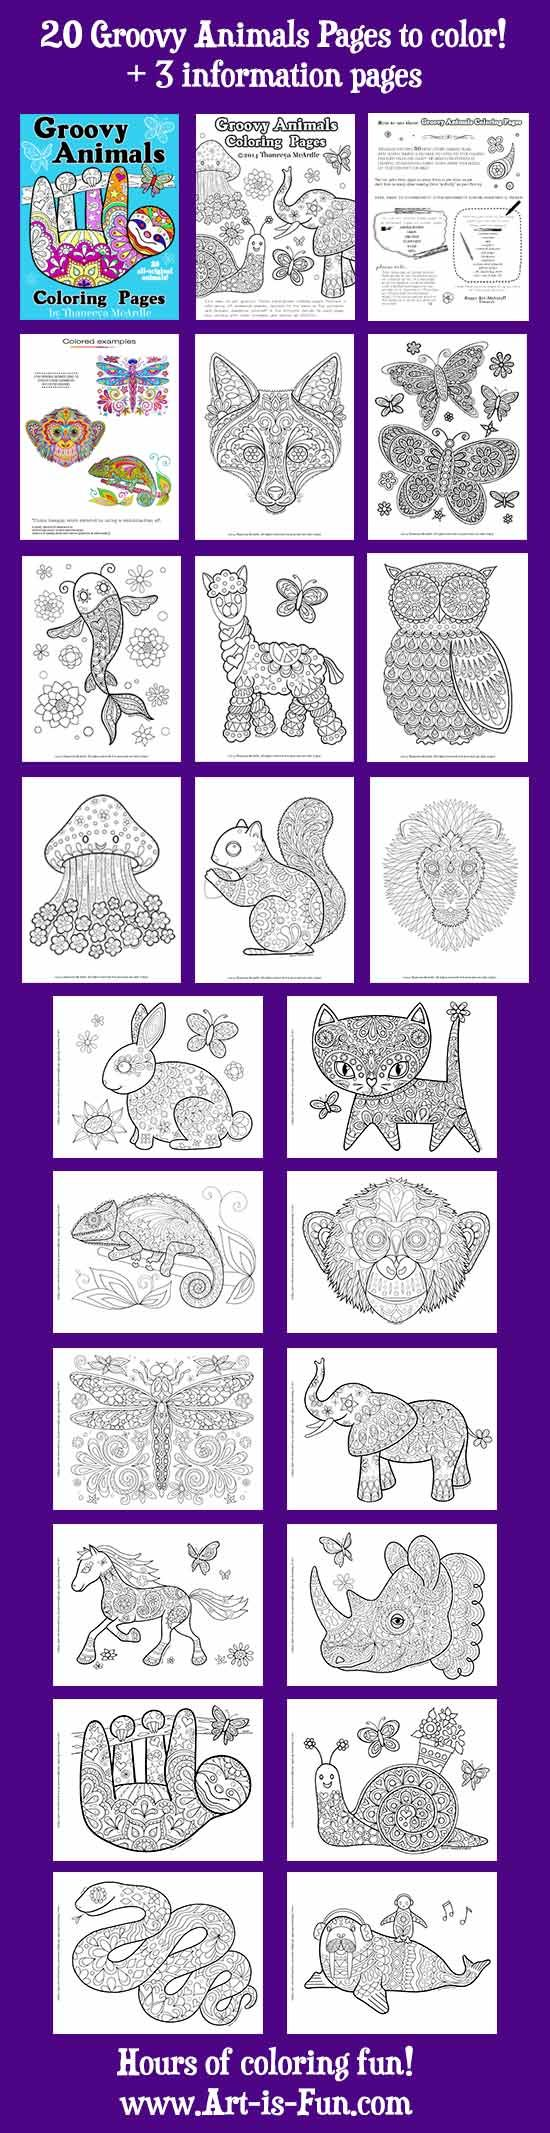 Groovy Animals Coloring Pages by Thaneeya McArdle: 20 Detailed Animals to Color!